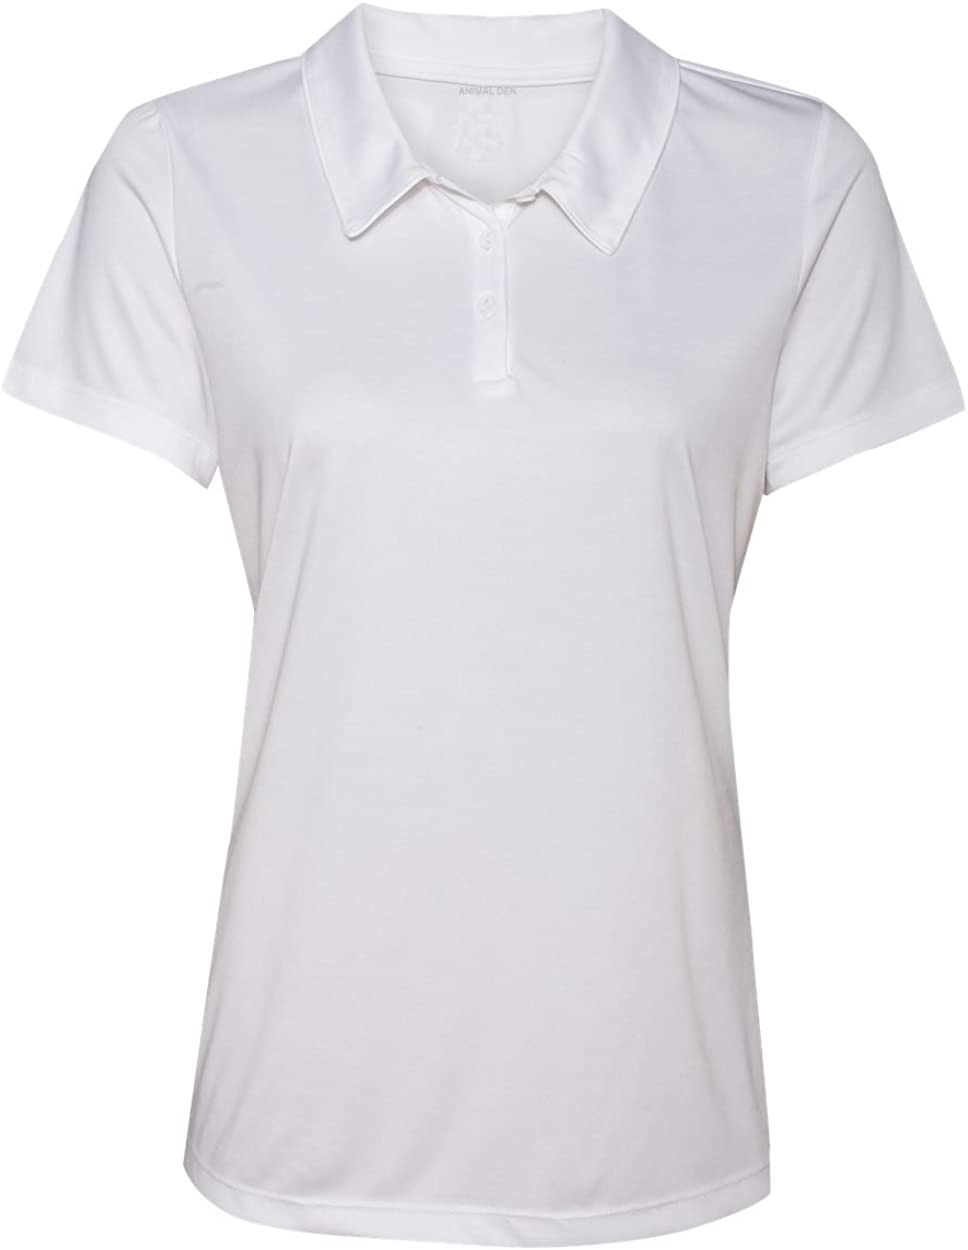 Women's Dry-Fit Golf Polo Shirts 3-Button Golf Polo's in 20 Colors XS-3XL Shirt